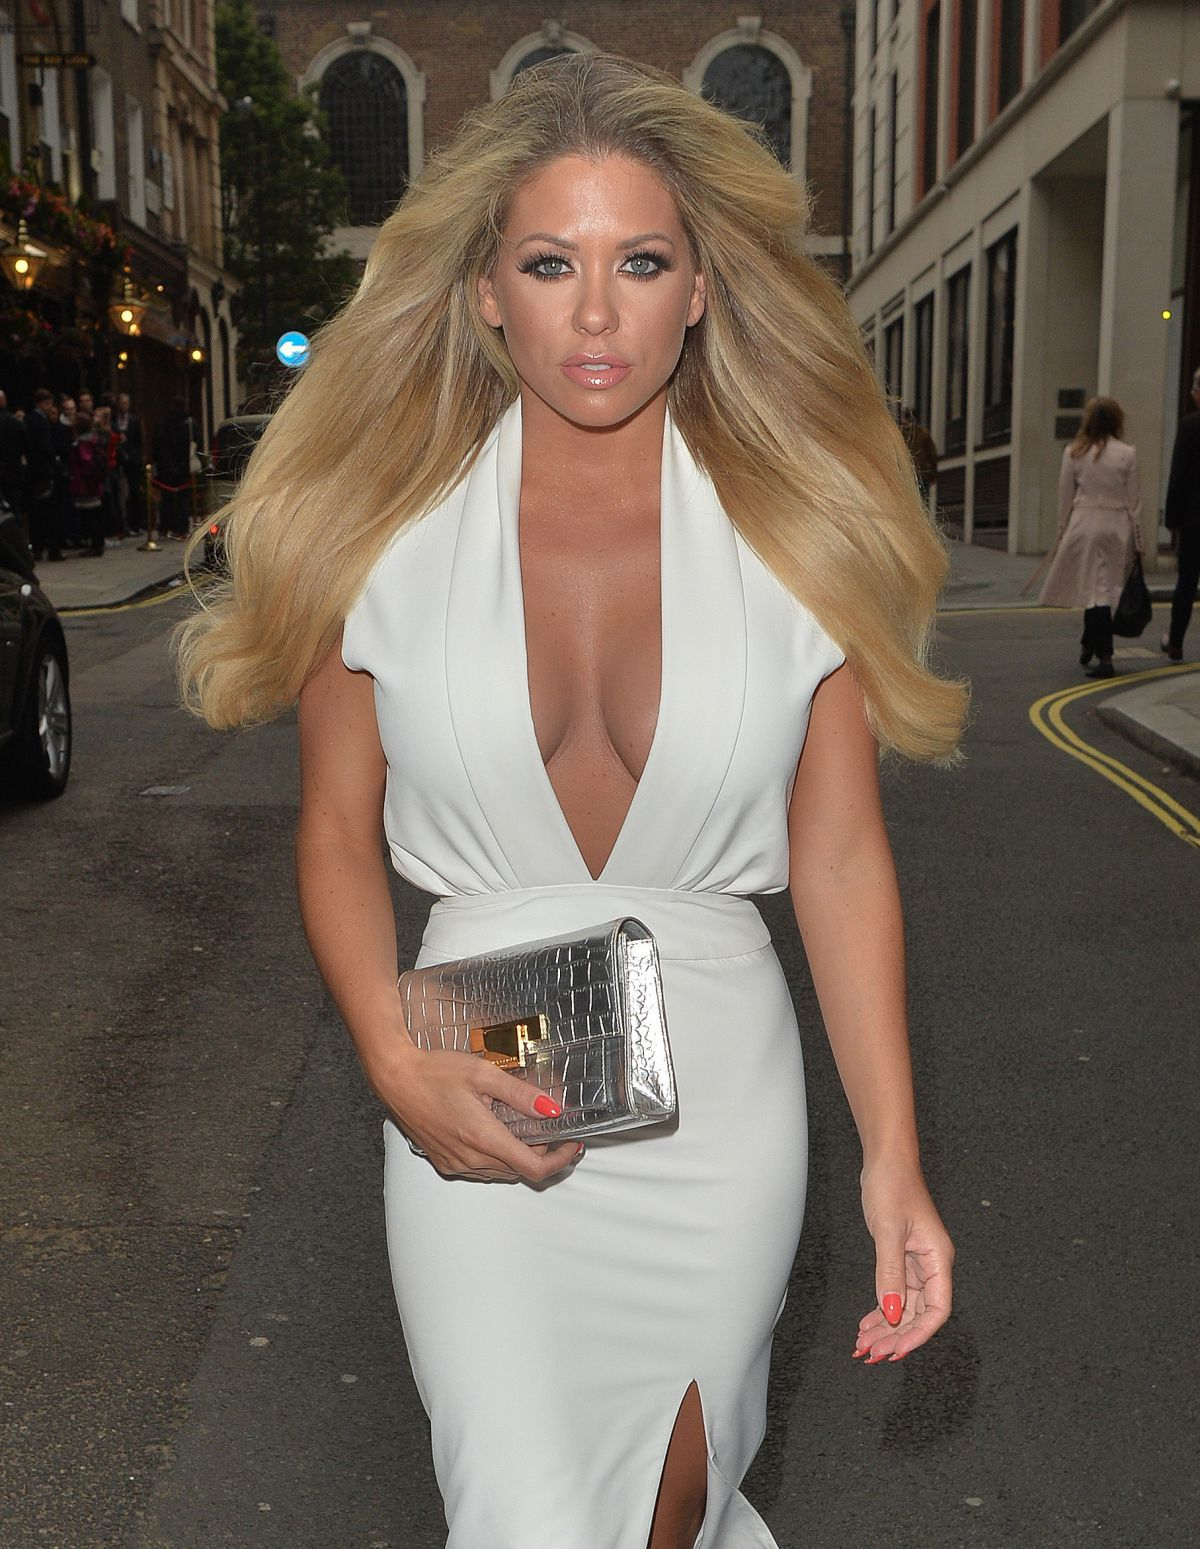 Bianca gascoigne upskirt arriving at ashlee simpsons brithday party